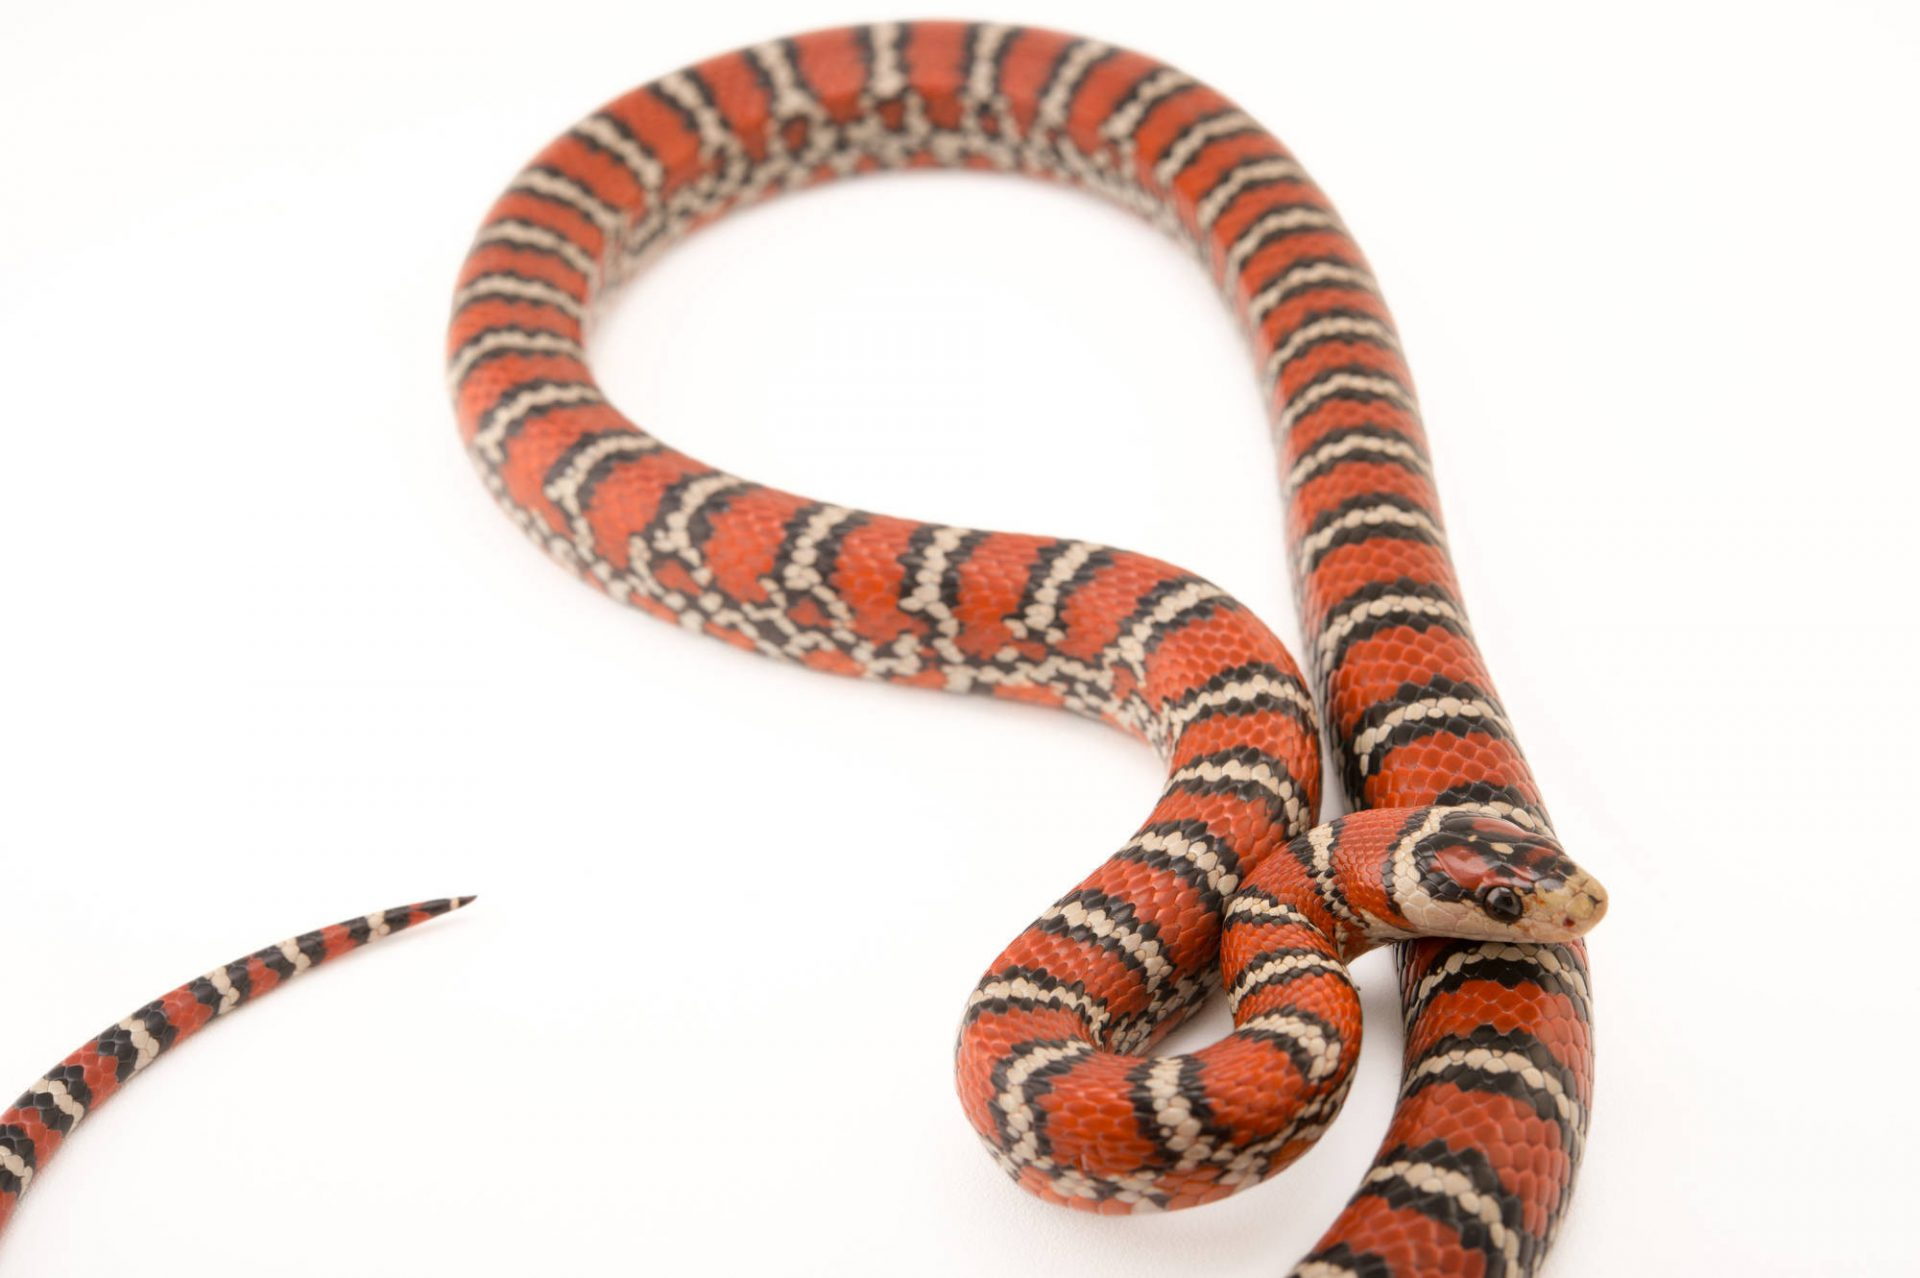 Picture of a Sonoran mountain kingsnake (Lampropeltis pyromelana knoblochi) at Pet Paradise.